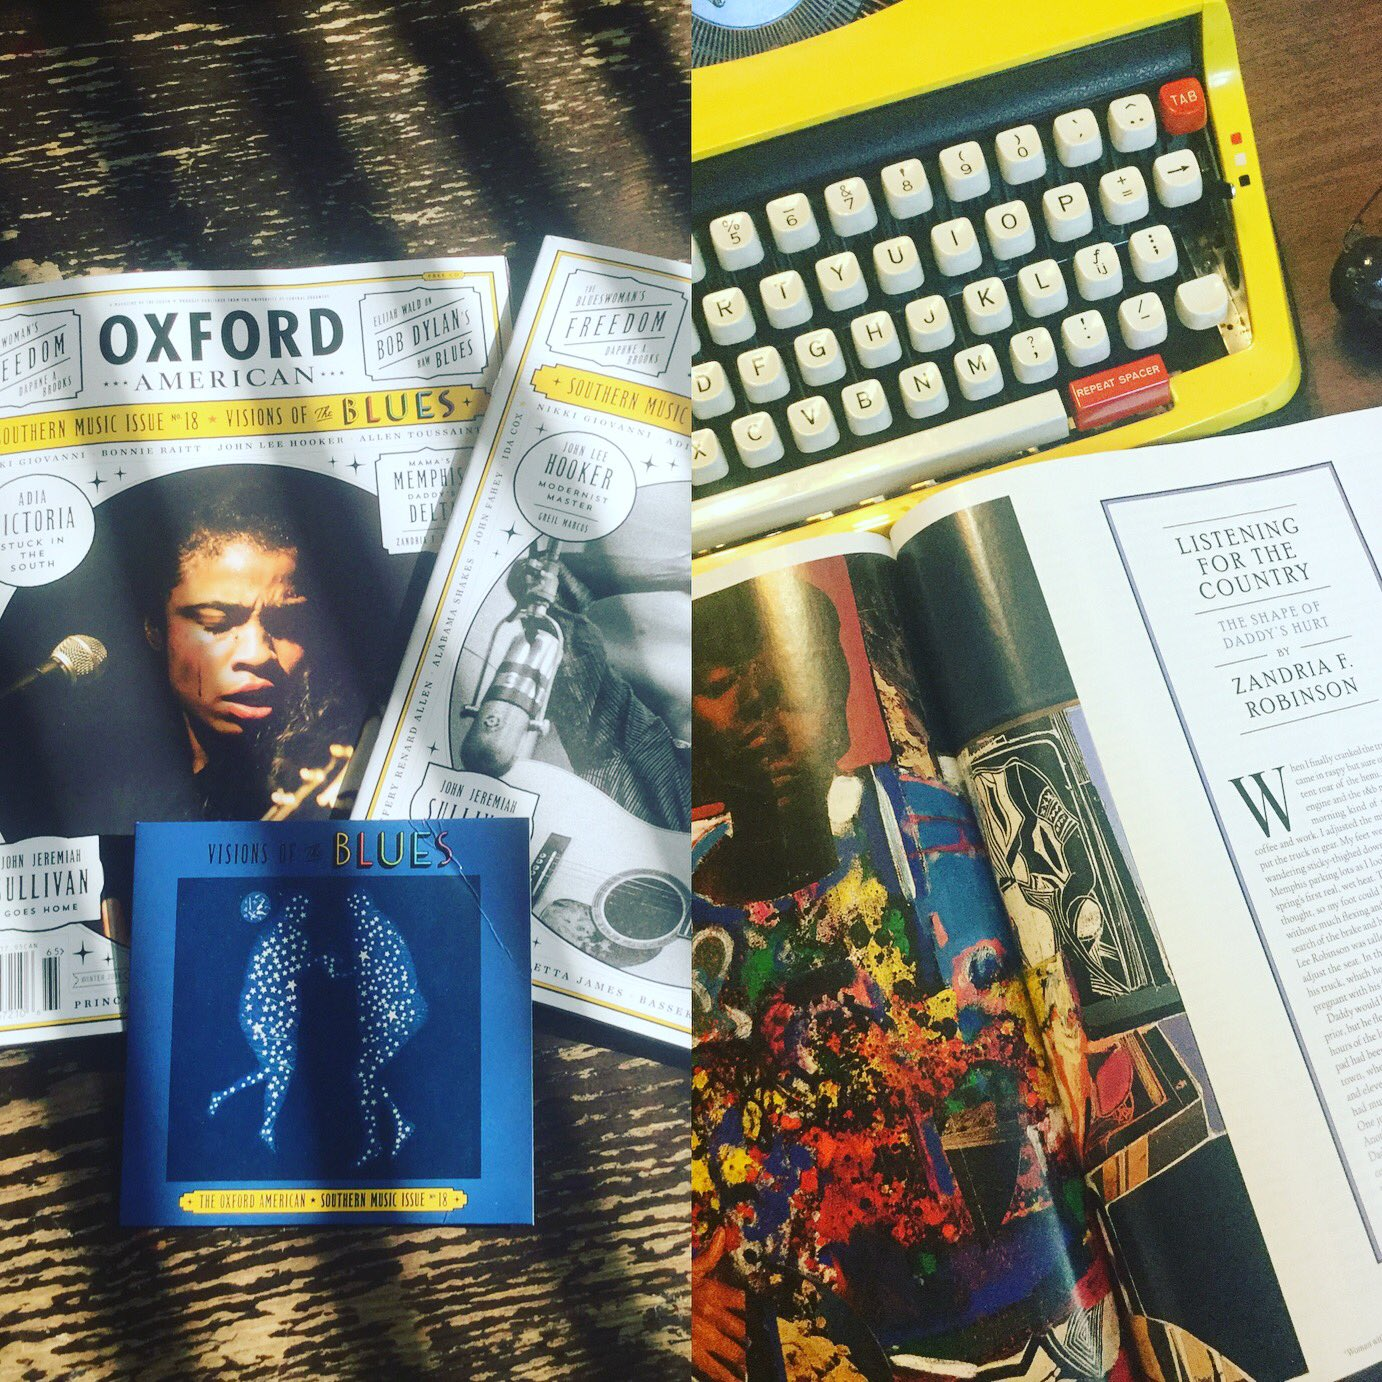 zeezus the scrivener on my memoir essay is in this zeezus the scrivener on my memoir essay is in this year s oxfordamerican music issue along hits from some of my favorite writers